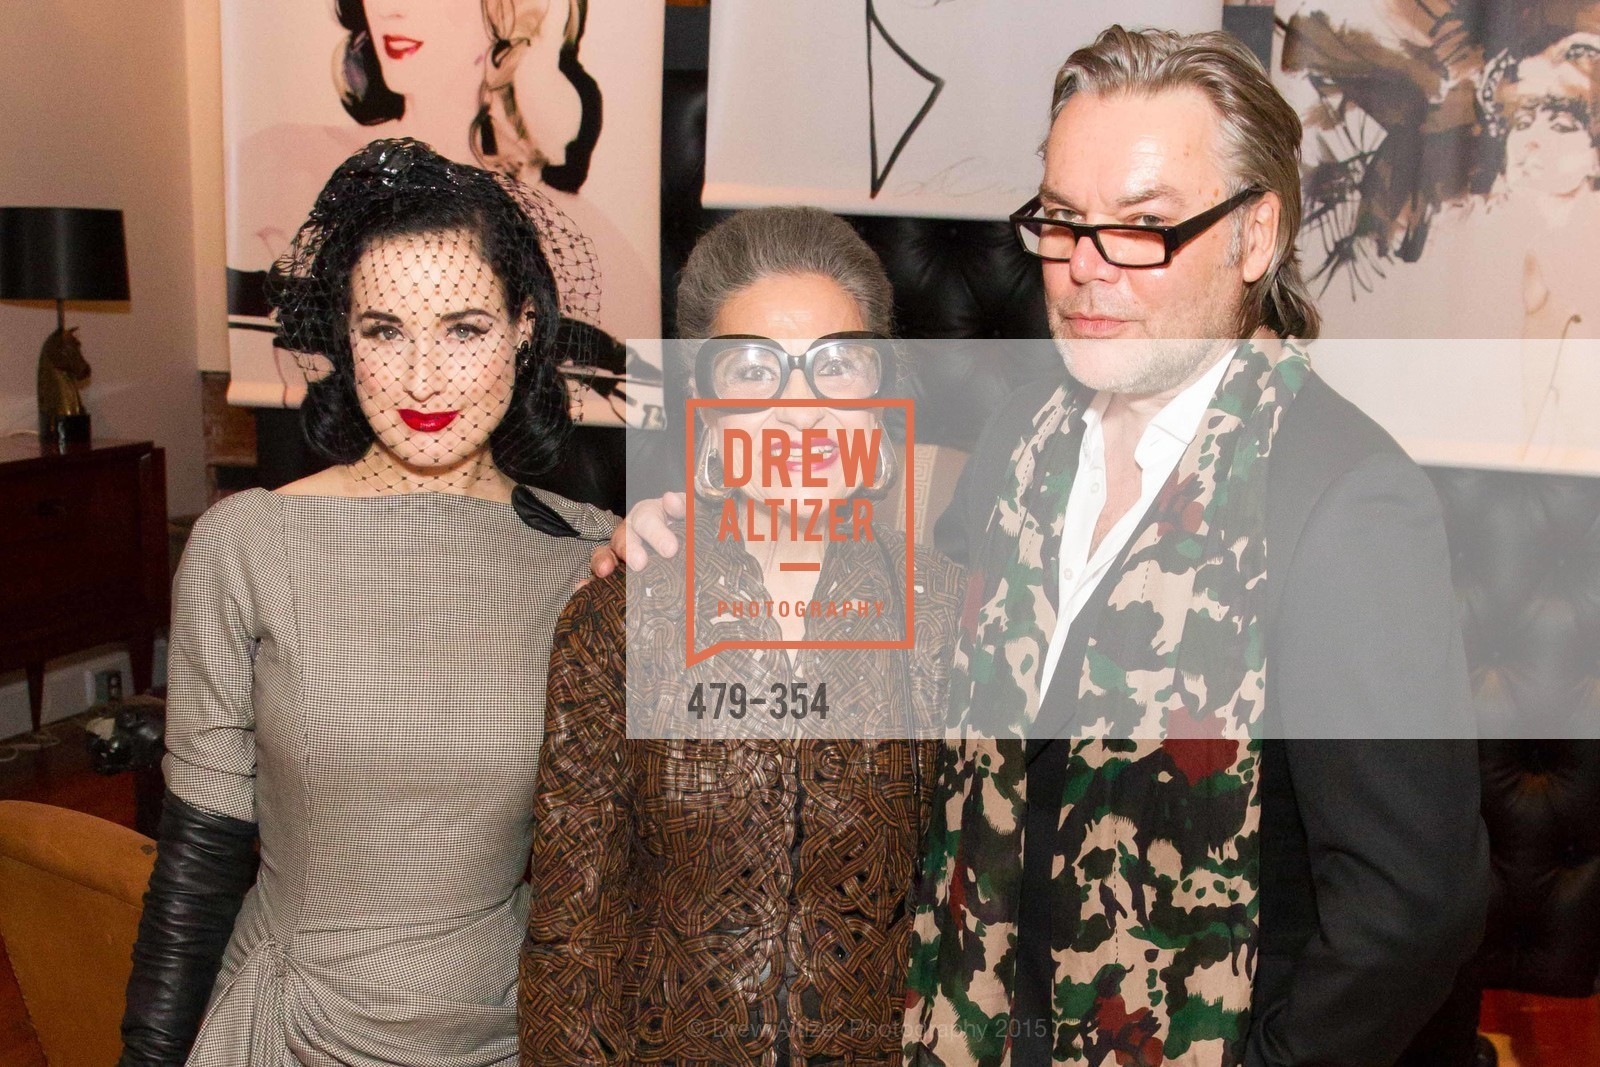 Dita Von Teese, Joy Venturini Bianchi, David Downton, Ken Fulk Hosts A David Downton Book Signing Party, Ken Fulk's Loft. 310 7th St, October 9th, 2015,Drew Altizer, Drew Altizer Photography, full-service agency, private events, San Francisco photographer, photographer california